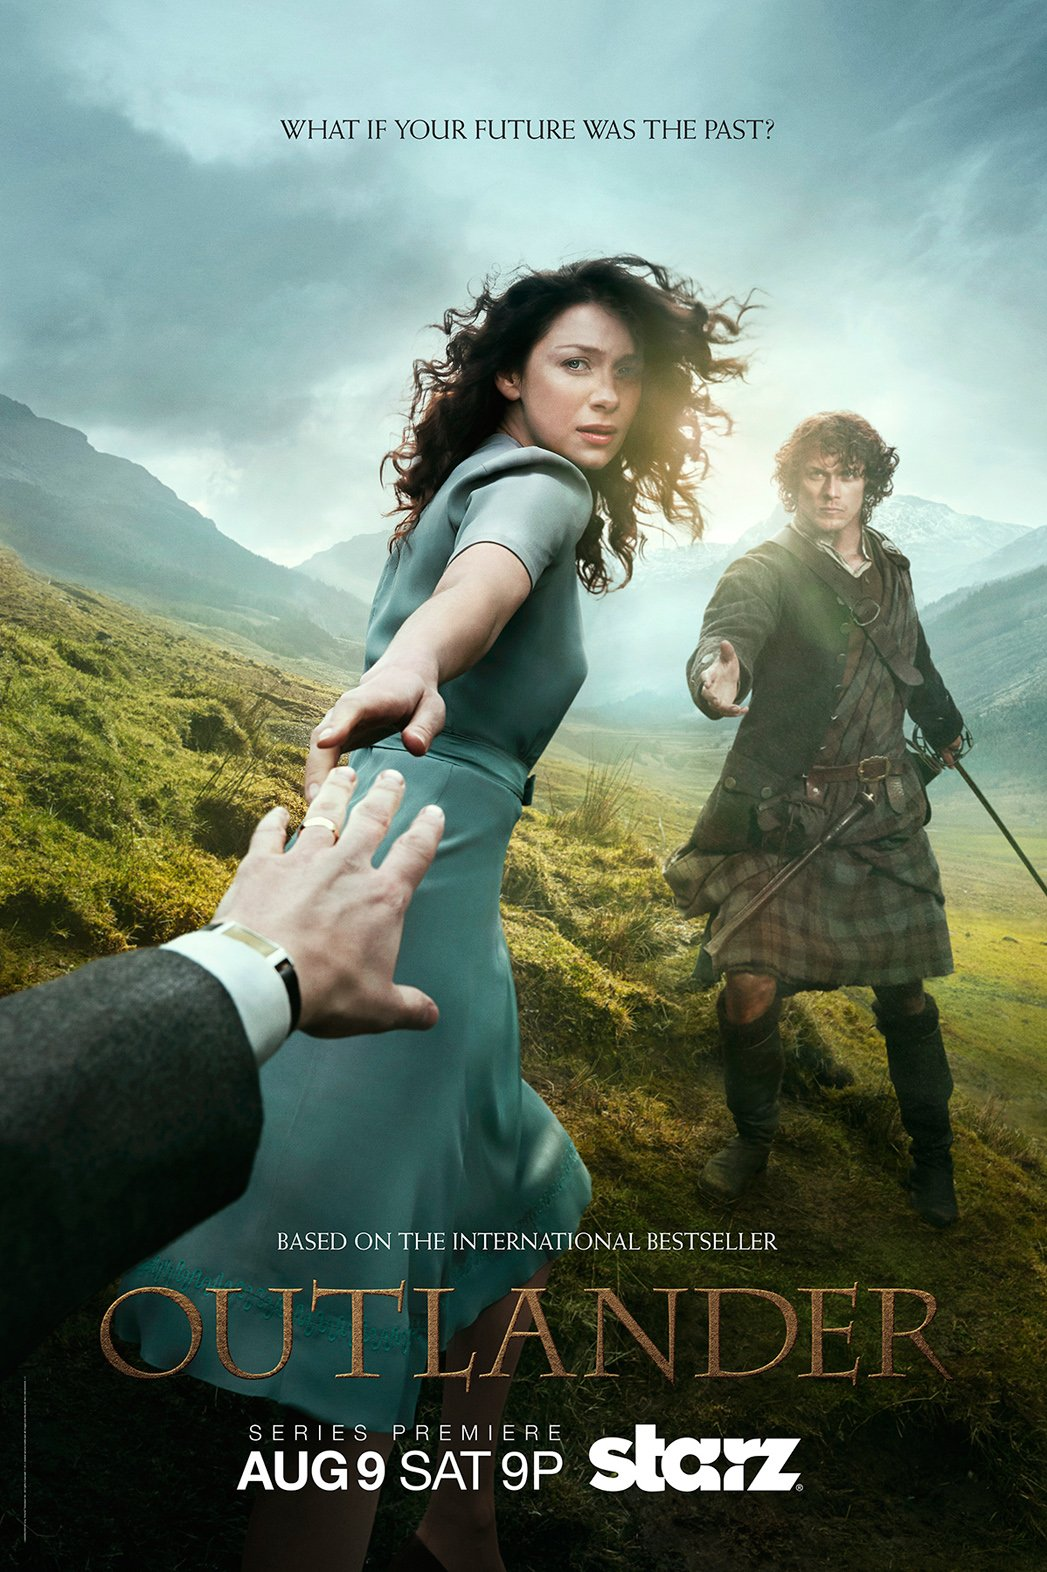 Outlander poster - Claire reaching back toward viewer with Jamie in the background reaching for her hand - caption What If Your Future was The Past?